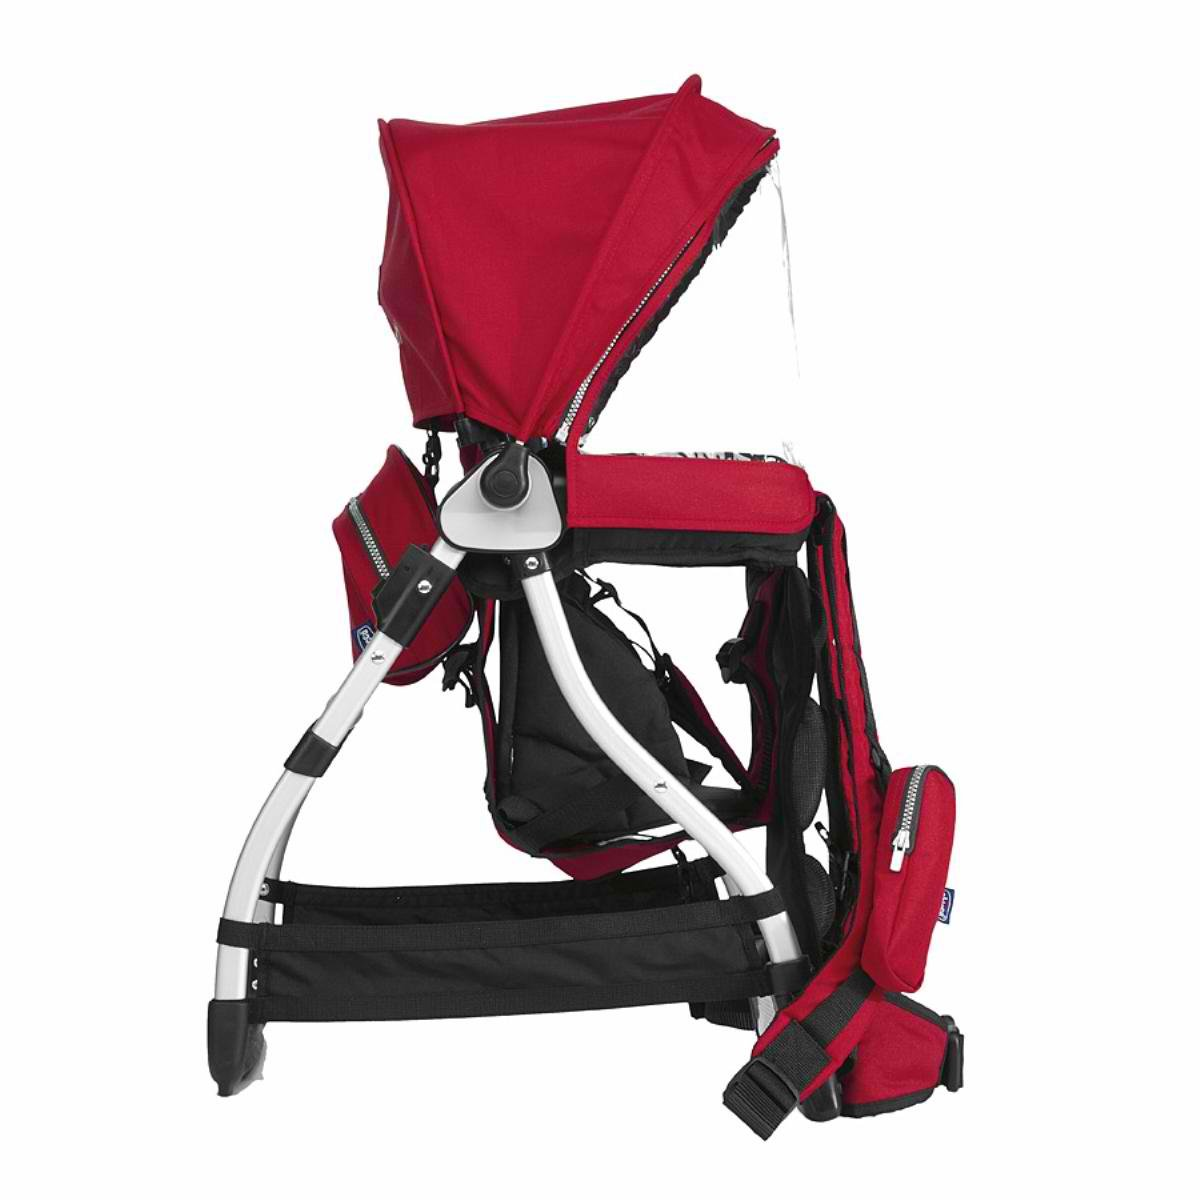 Chicco Porte Bébé Dorsal Caddy Fire Made In Bébé